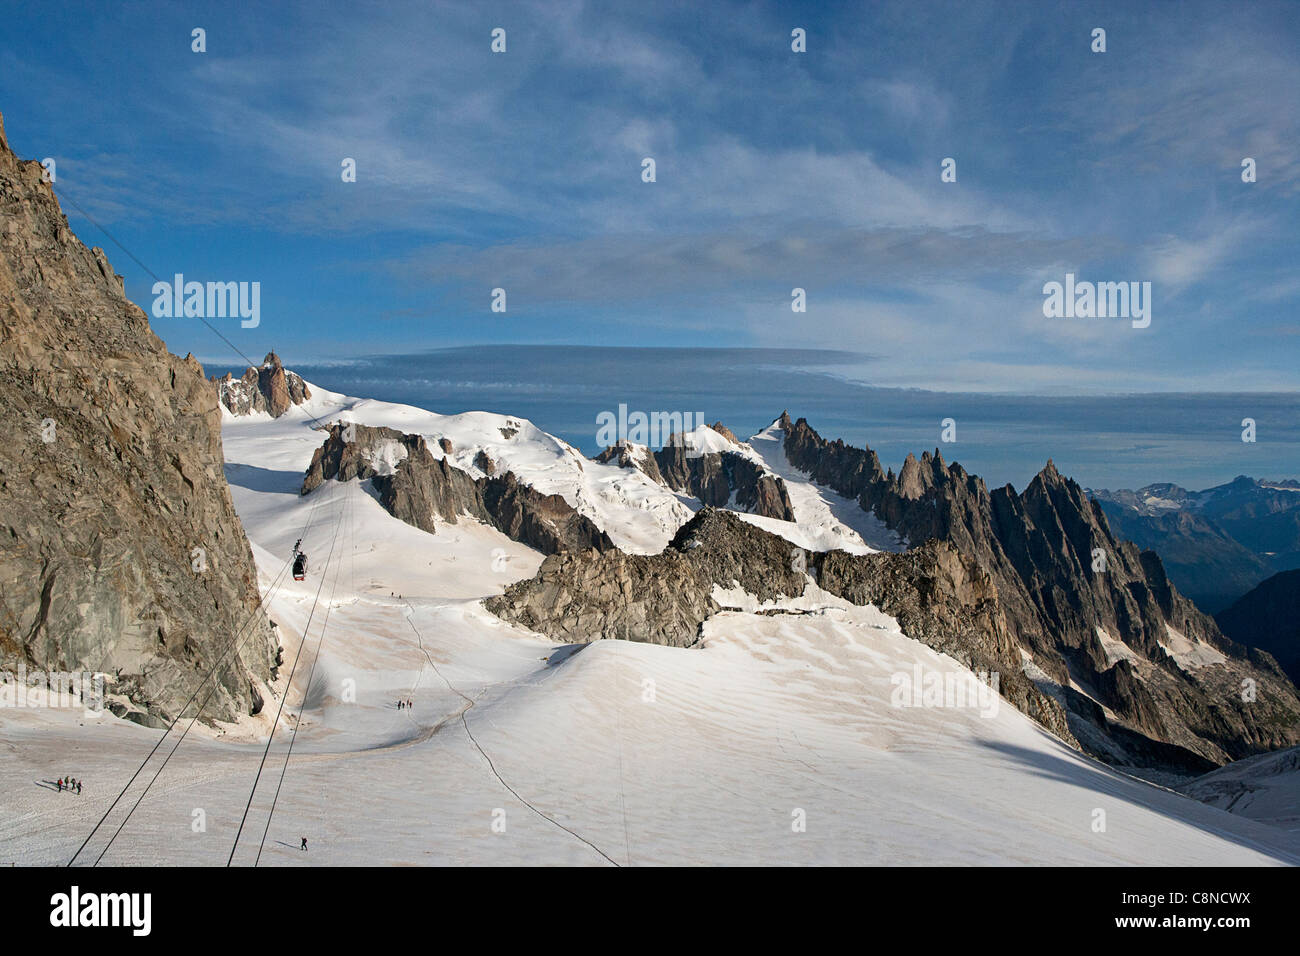 Italy, Piemonte, View from Italian side (Punta Helbronner) to the French (Aiguille du Midi), cable car linking the - Stock Image